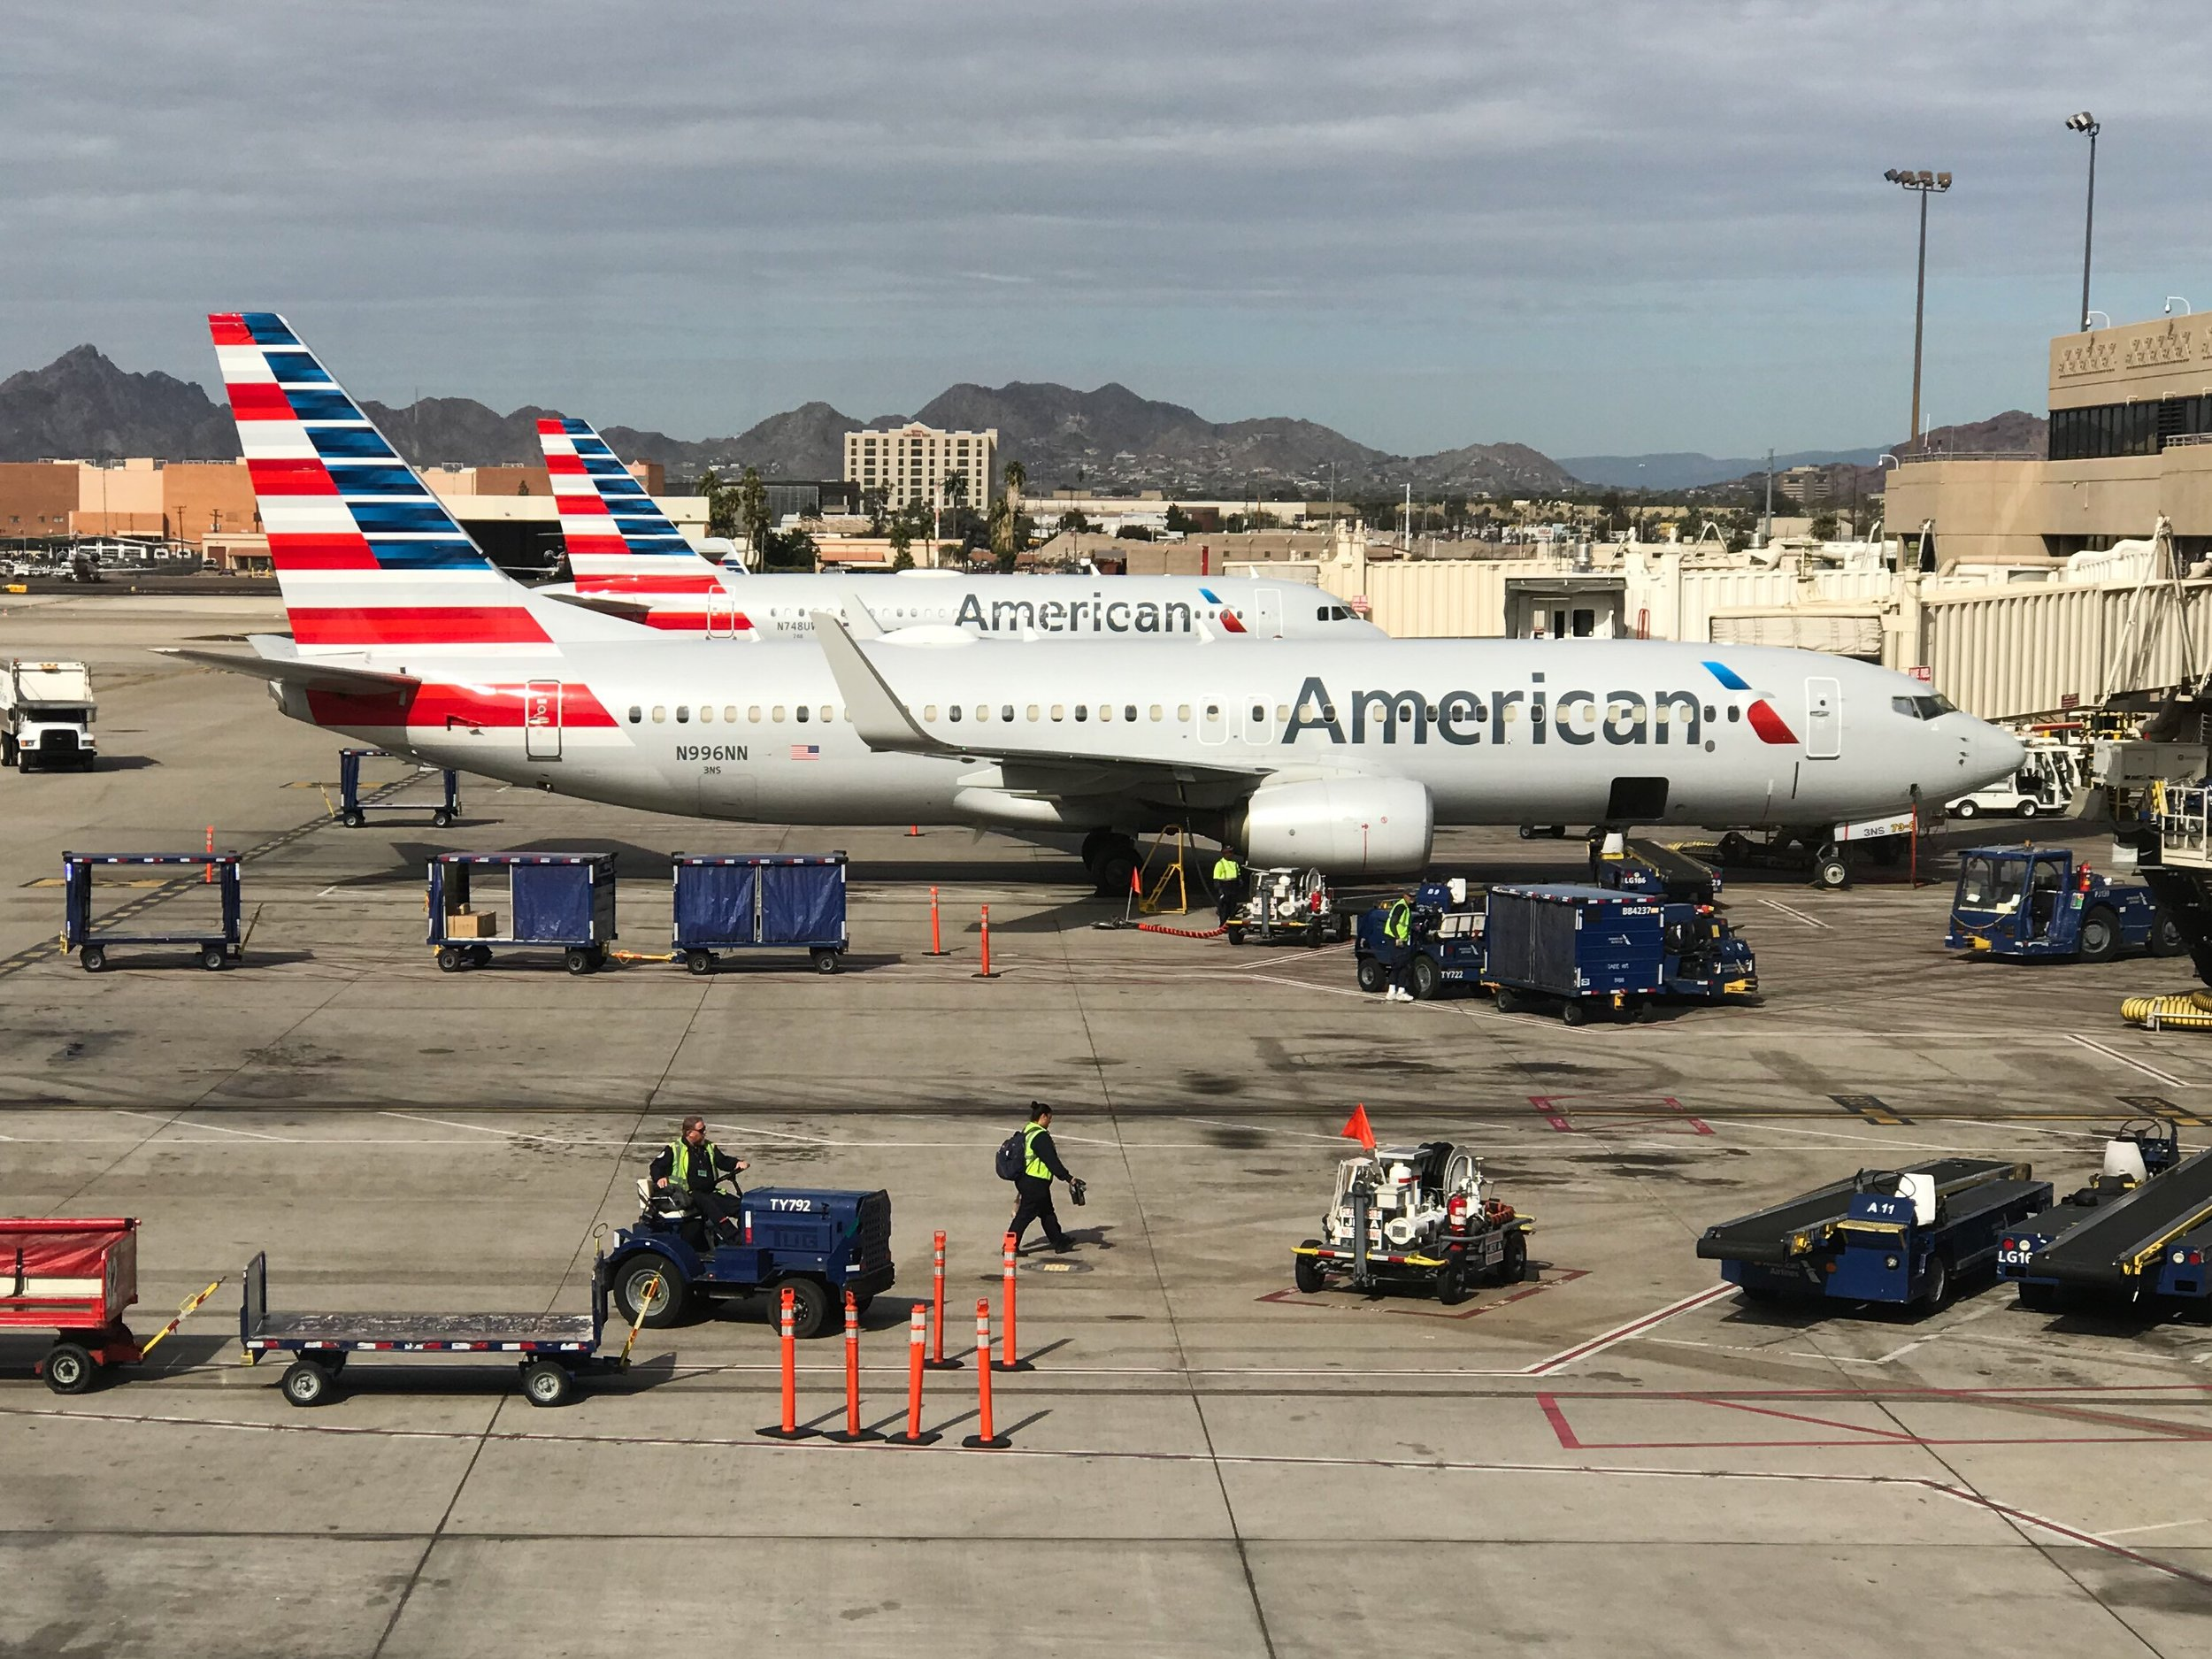 AIRCRAFT FLEET - American operates a large fleet of wide-body, narrow-body, and regional aircraft. Get detailed information about each plane, and see cabin and exterior photos.